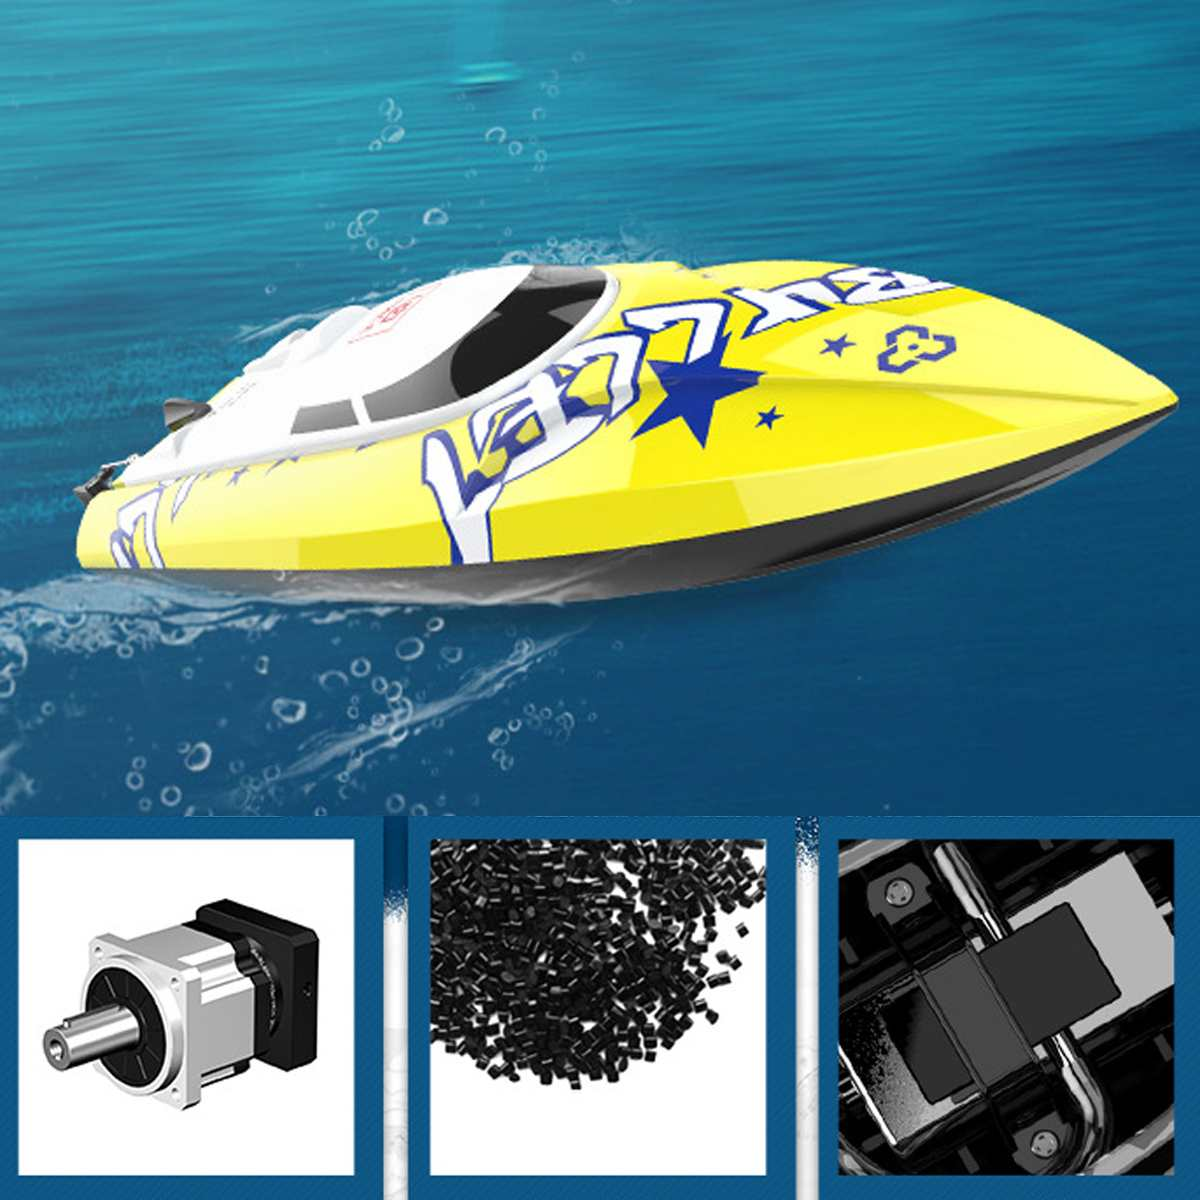 New Brushless RC Racing Boat 48KM/H 2.4G High Speed Electronic Remote Control Boat Toys For Kids Remote Control Toys enlarge